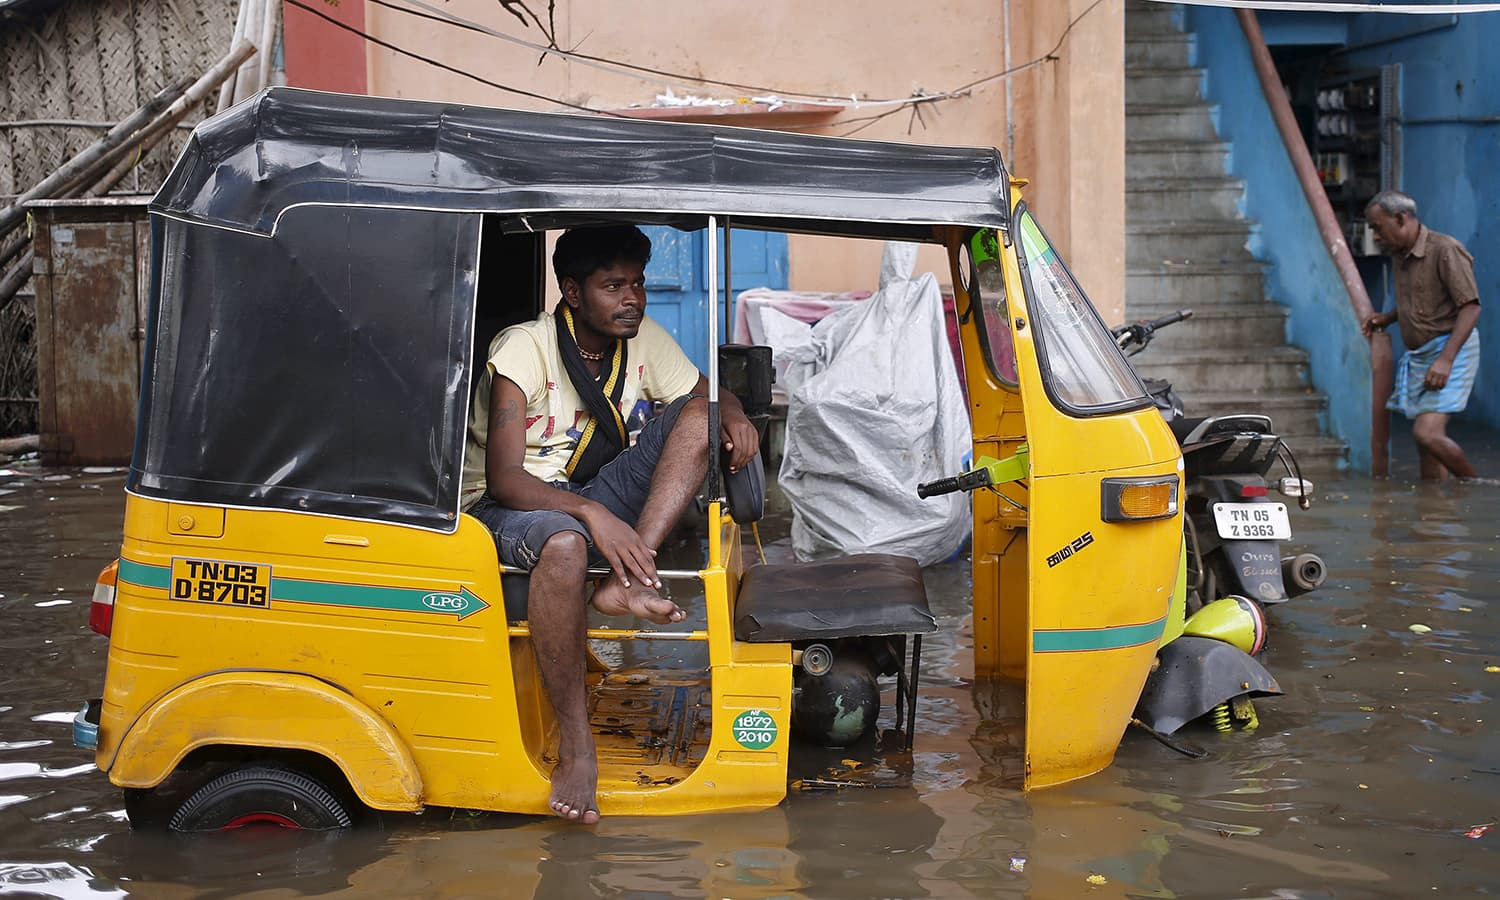 A man sits in an auto-rickshaw in a flooded area in Chennai, India, December 3, 2015. — Reuters